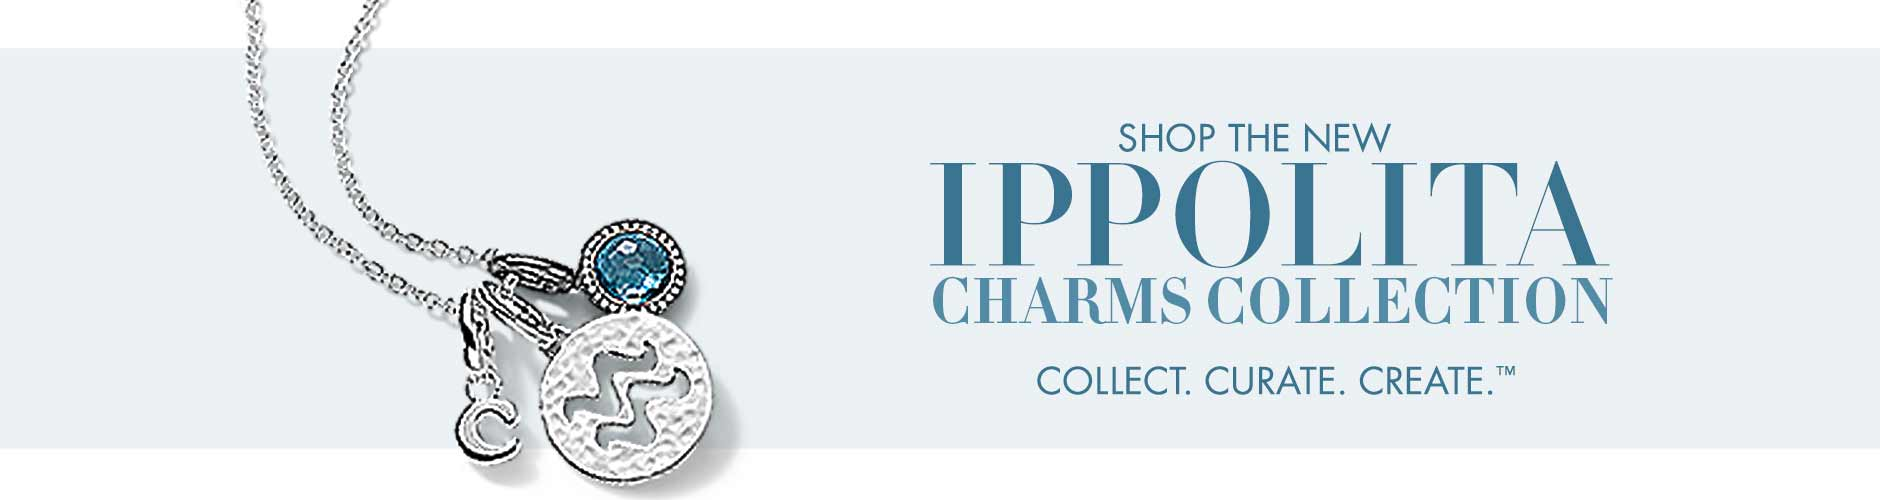 Ippolita Charms Collection